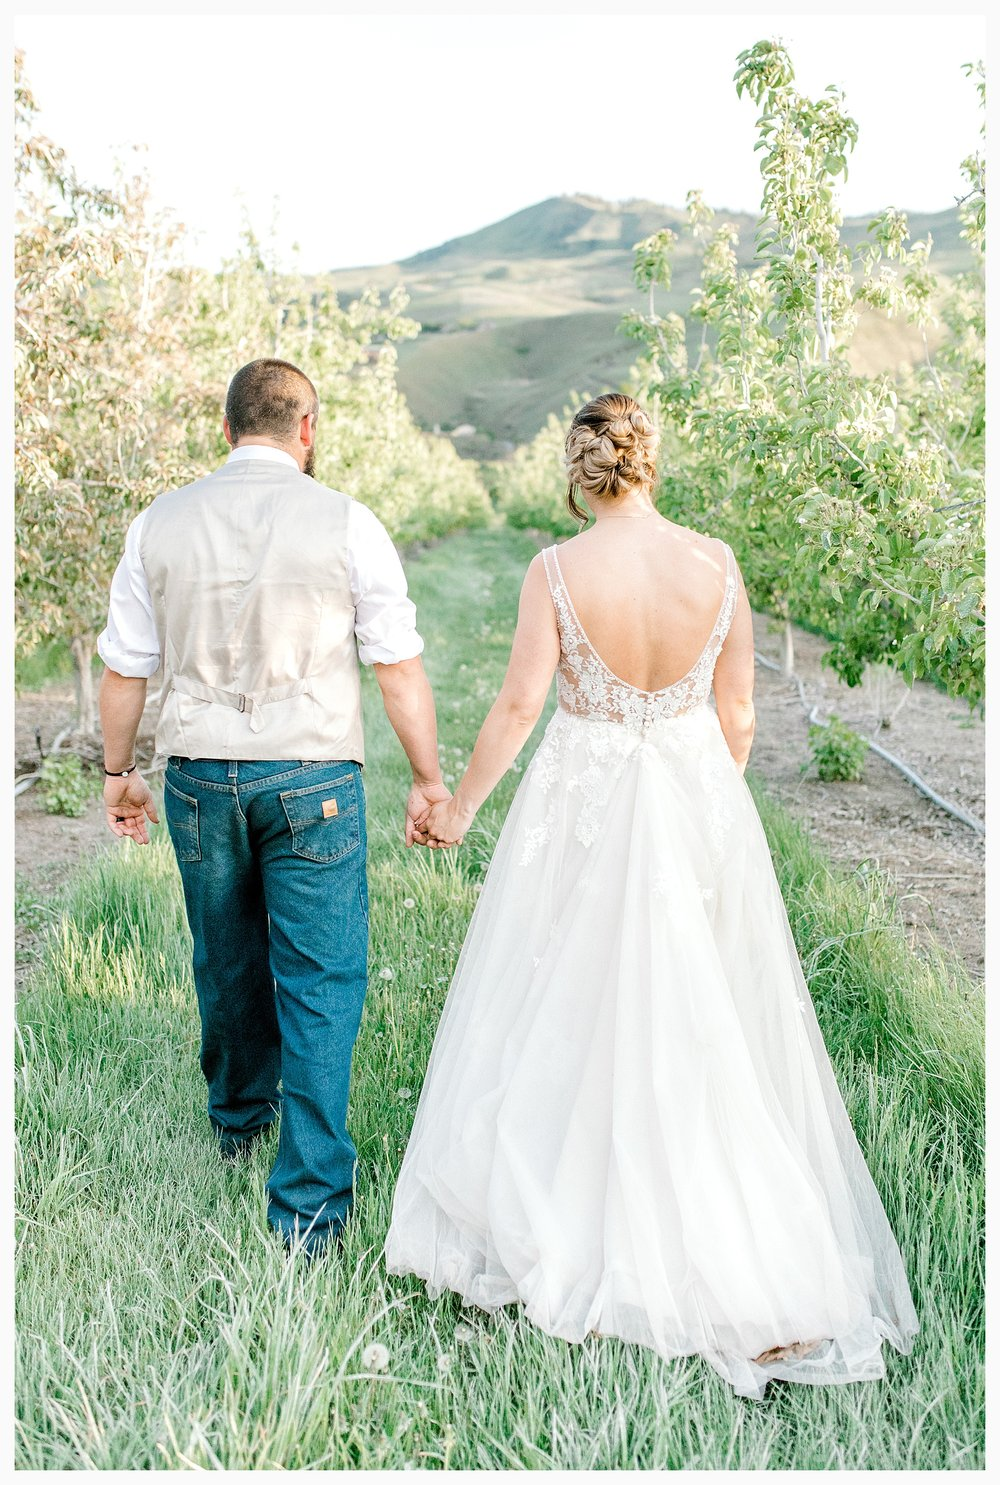 Rustic barn wedding in Wenatchee Washington at Sunshine Ranch on Easy Street, Emma Rose Company Seattle PNW Light and Airy Wedding Photographer_0131.jpg